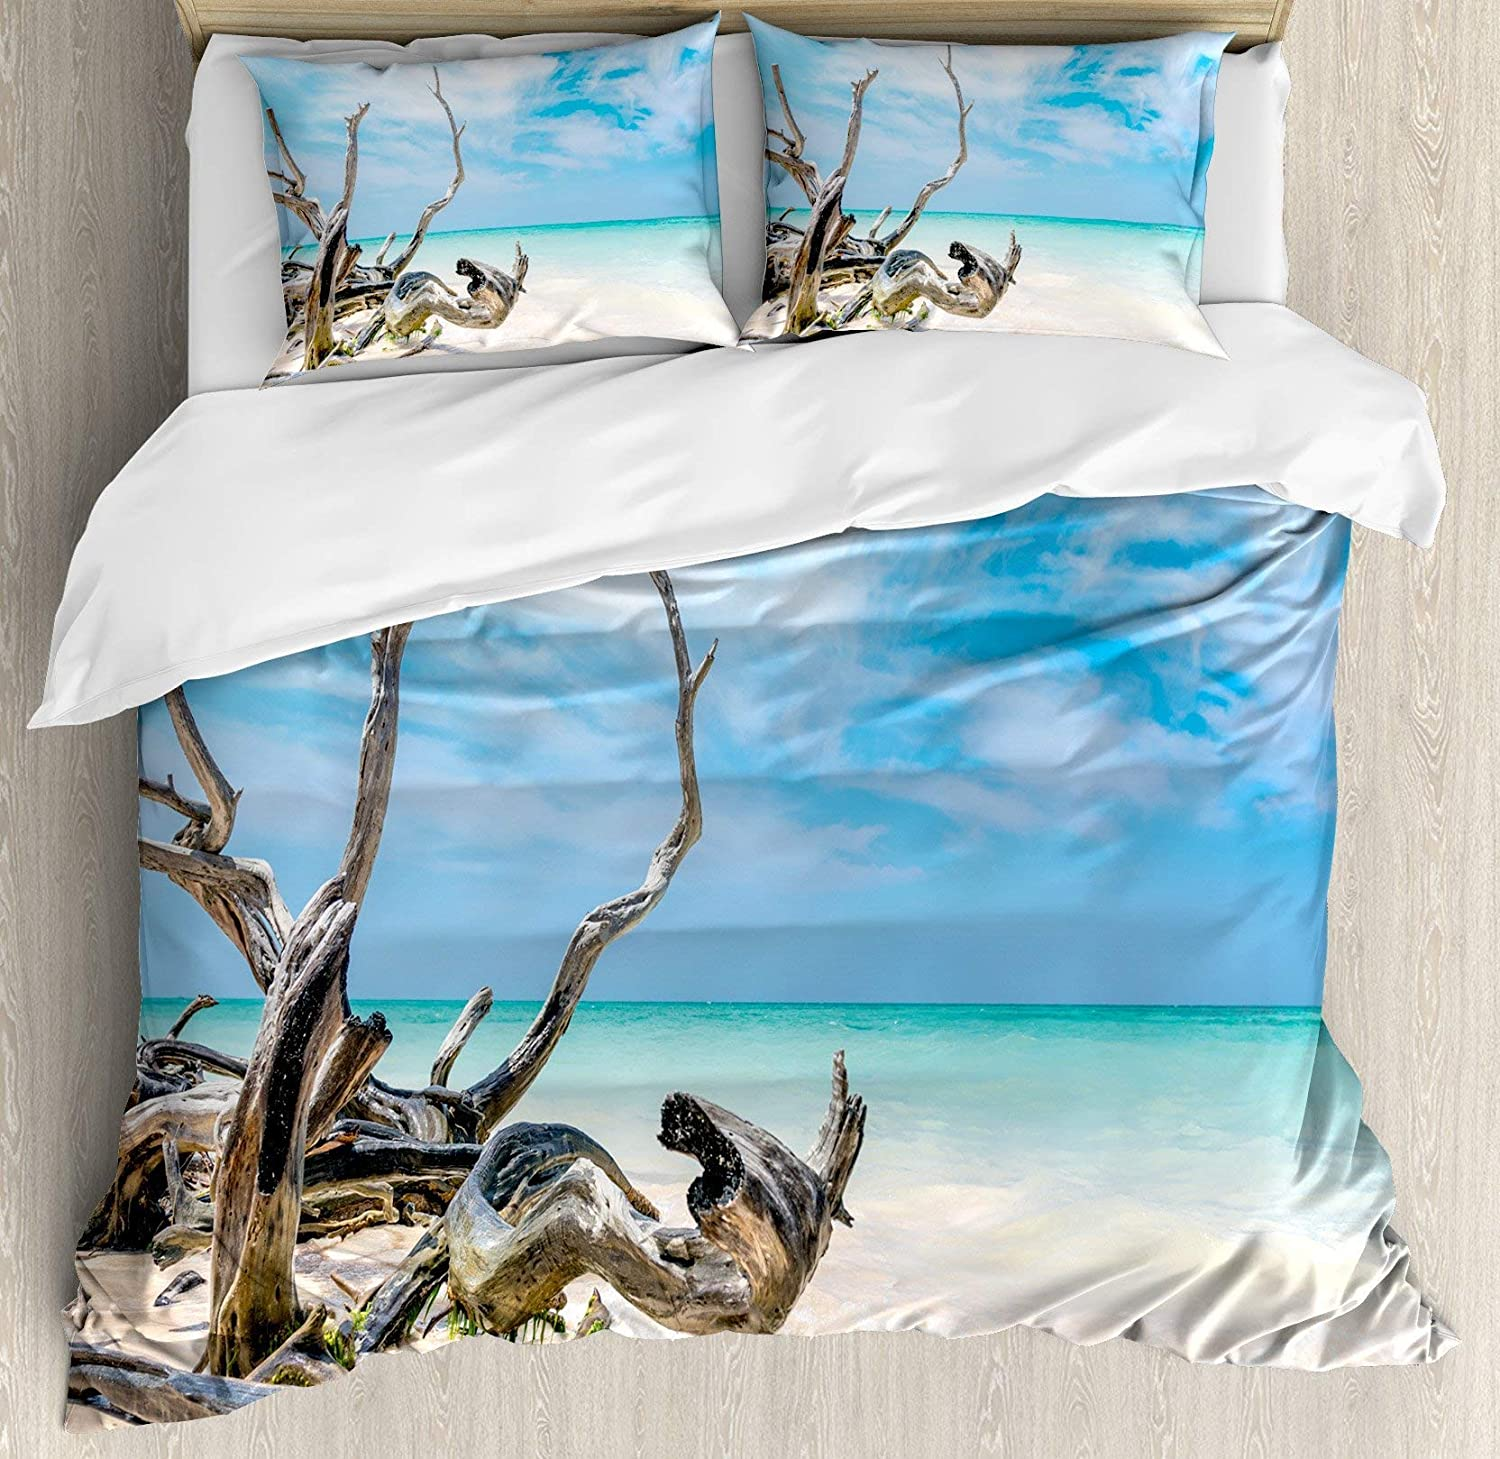 Driftwood 4pc Bedding Set Full Size, Seascape Theme Branches on The Sandy Beach of Cuba and The Sky Image Floral Lightweight Microfiber Duvet Cover Set, Turquoise Sky bluee